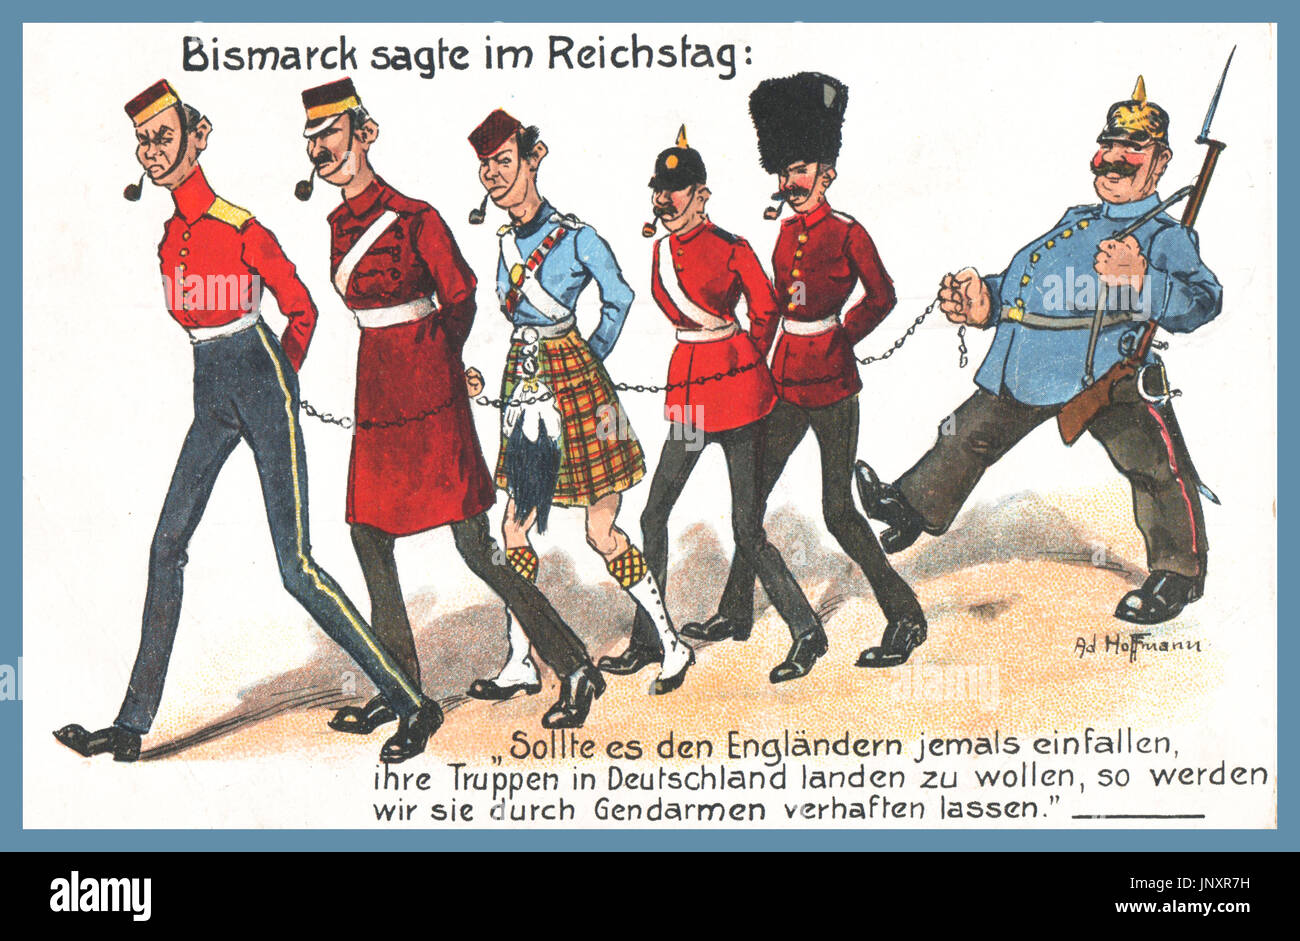 WW1 German Propaganda Postcard 'Bismarck sagte im Reichstag' 'Bismarck says in the Reichstag'...In the poster are caricatures of a German guard and five British soldiers chained to each other to make them look like dogs on a leash, a sign of how much contempt the  Germans held them in. The British soldiers are stereotypes they all have a pipe in their mouth and are wearing caricatured British military uniforms.  'BISMARK SAYS IN REICHSTAG '  ''Should the British ever want to land their troops in Germany, so we will have them arrested by gendarmes''  (German WW1 humour) - Stock Image